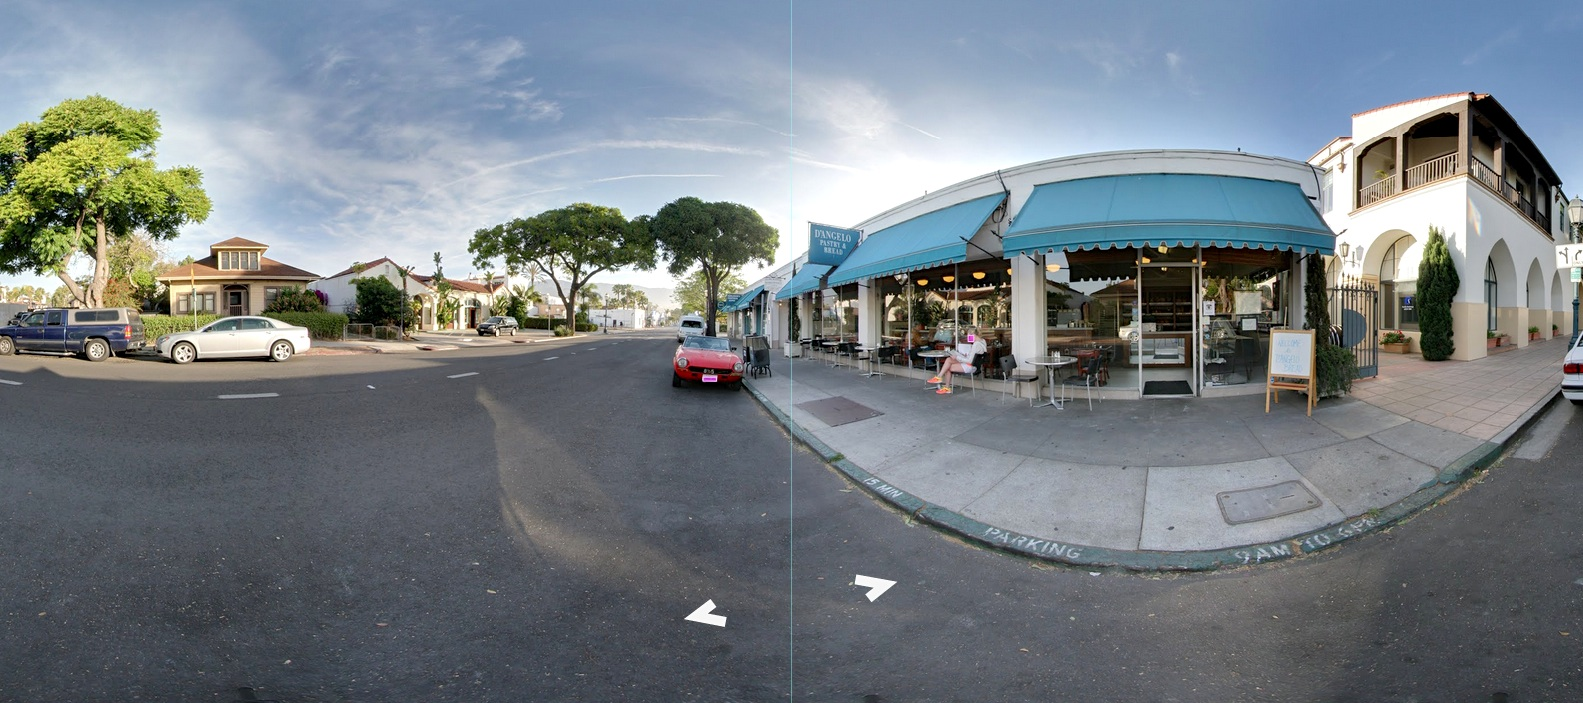 D'Angelo's Bread, best Bakery in Santa Barbara. Google Business View created by 805 Productions.